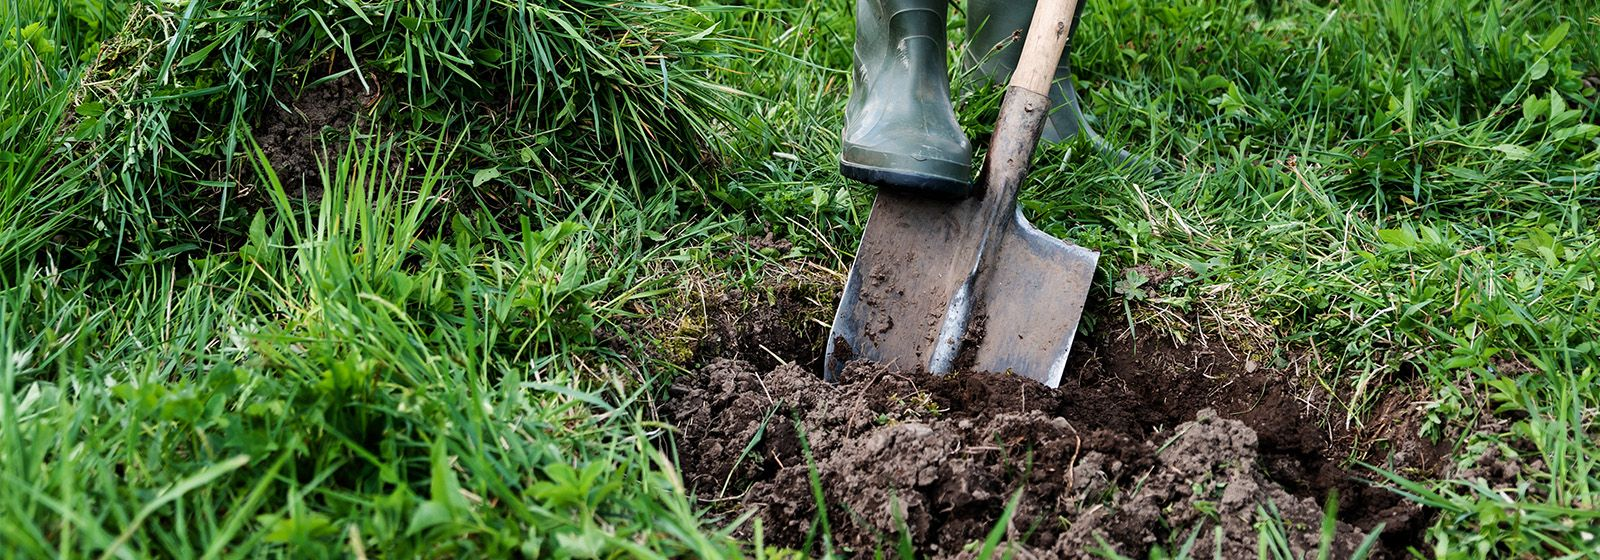 Your Aug. 11 reminder: Before you dig, call 811